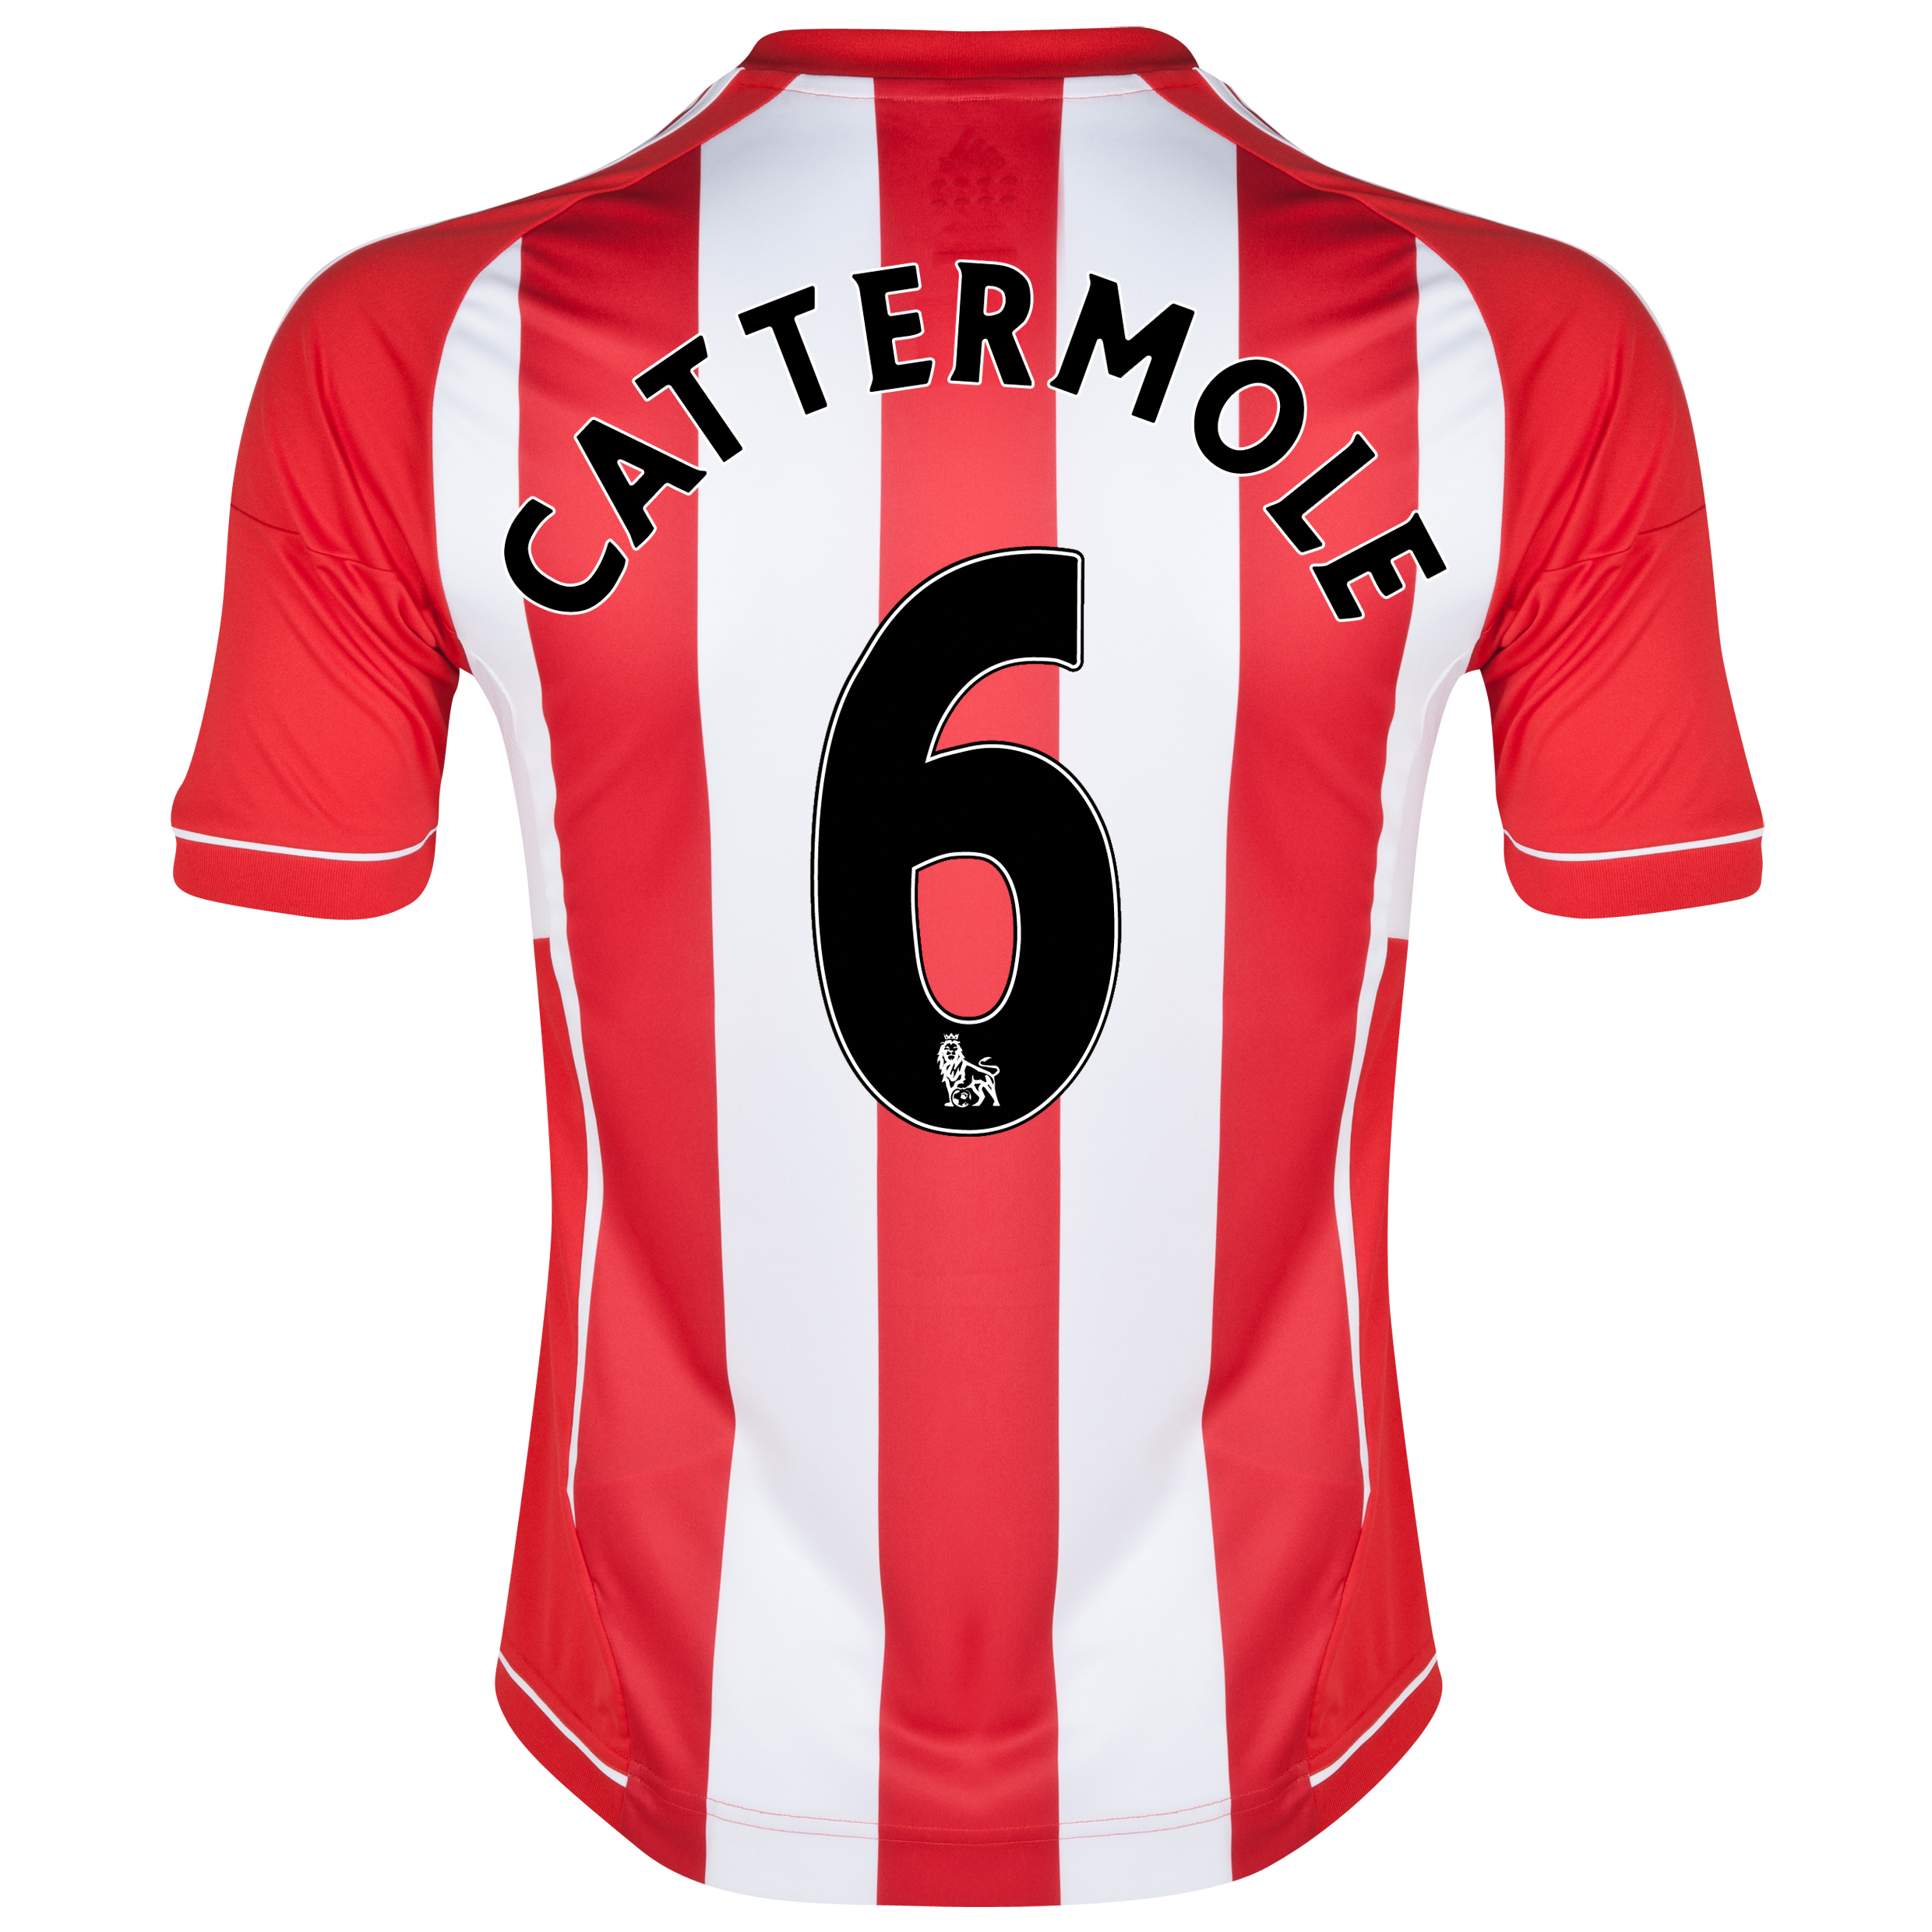 Sunderland Home Shirt 2012/13 with Cattermole 6 printing